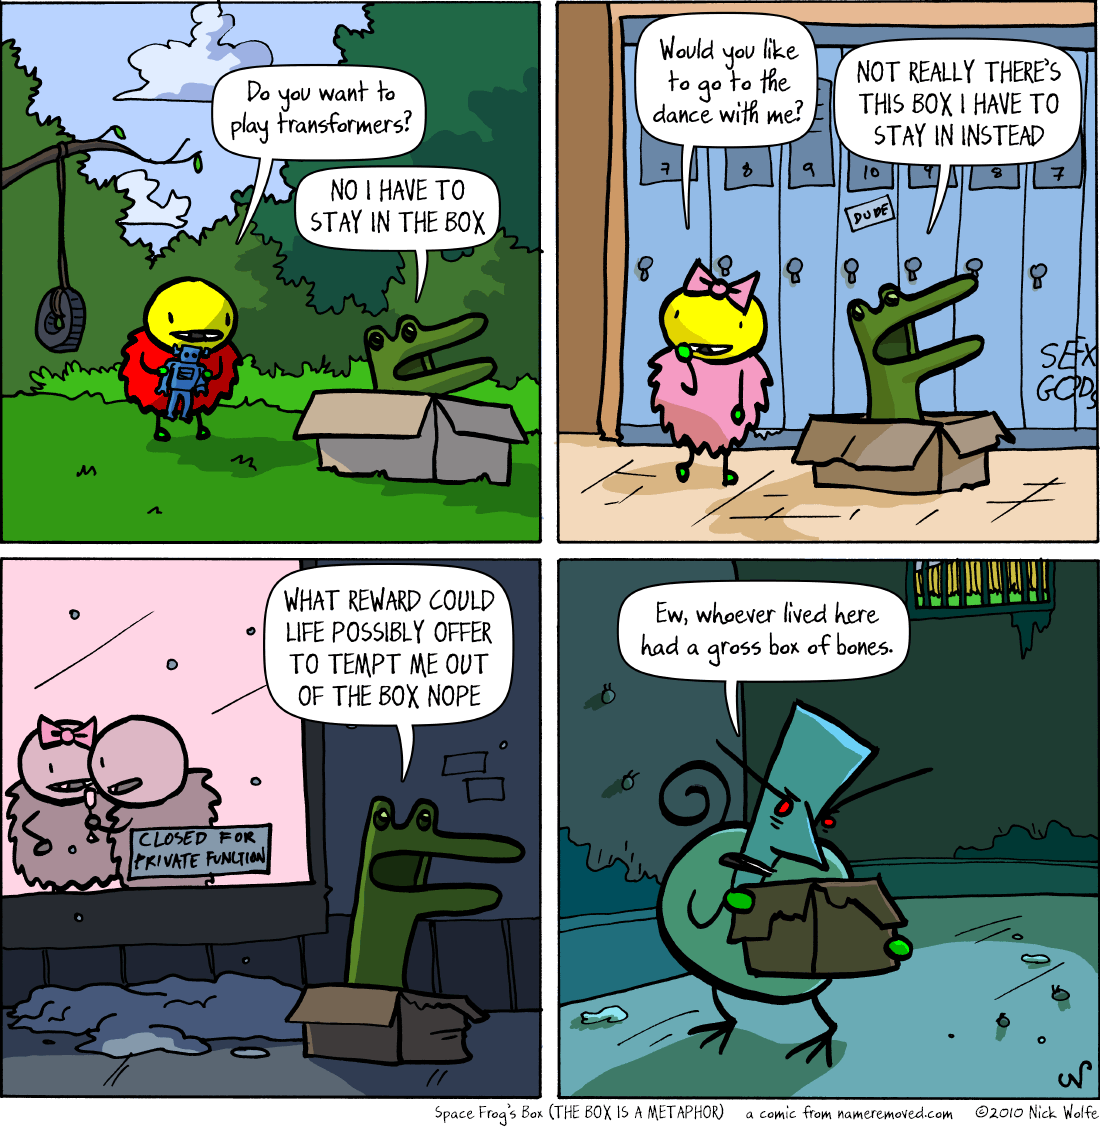 Space Frog's Box (THE BOX IS A METAPHOR)